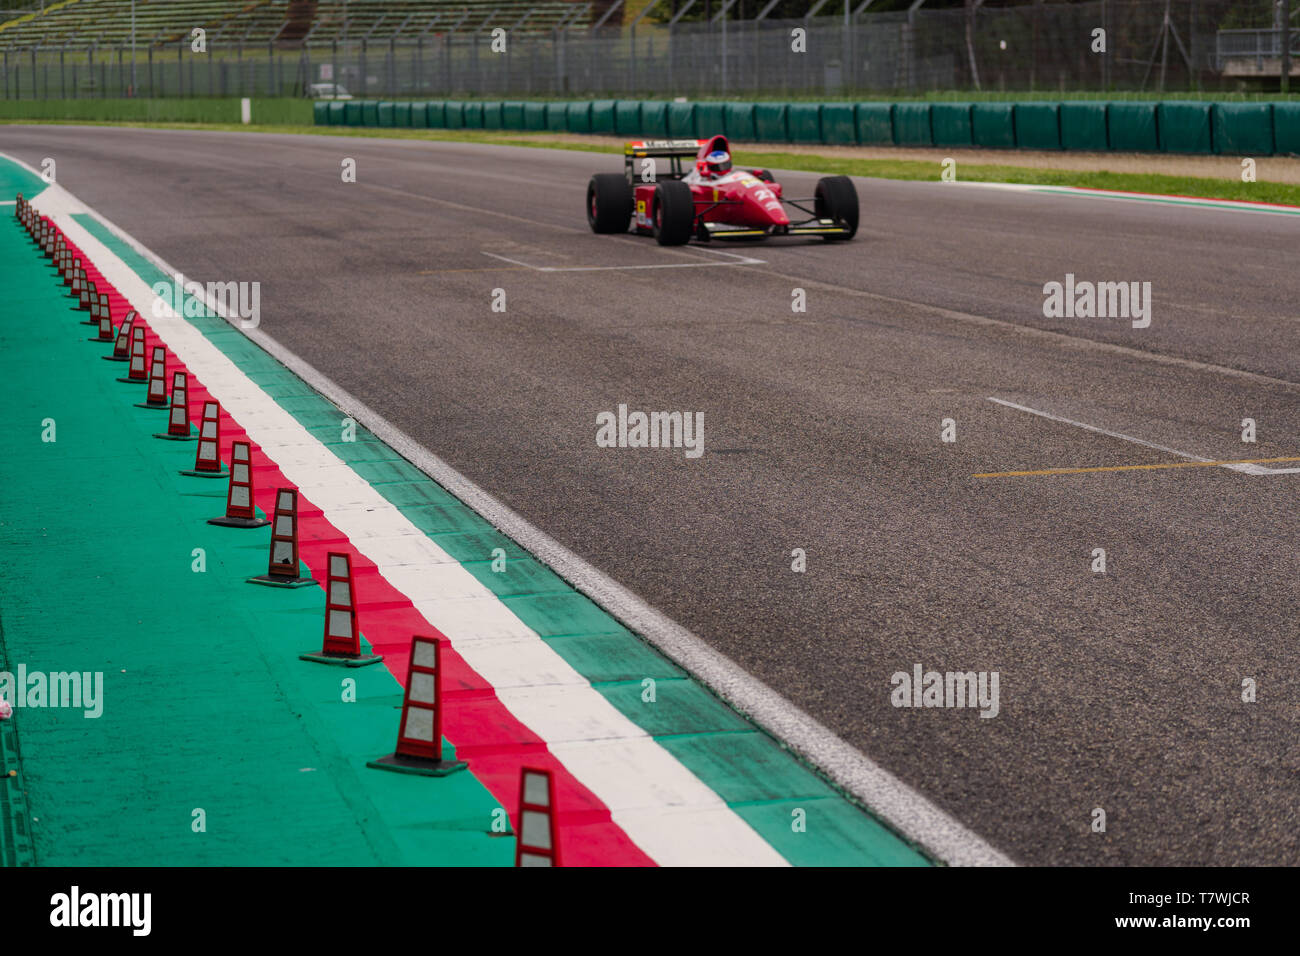 vintage ferrari is exiting from th the last corner to pass on the main straight at the full throttle Stock Photo